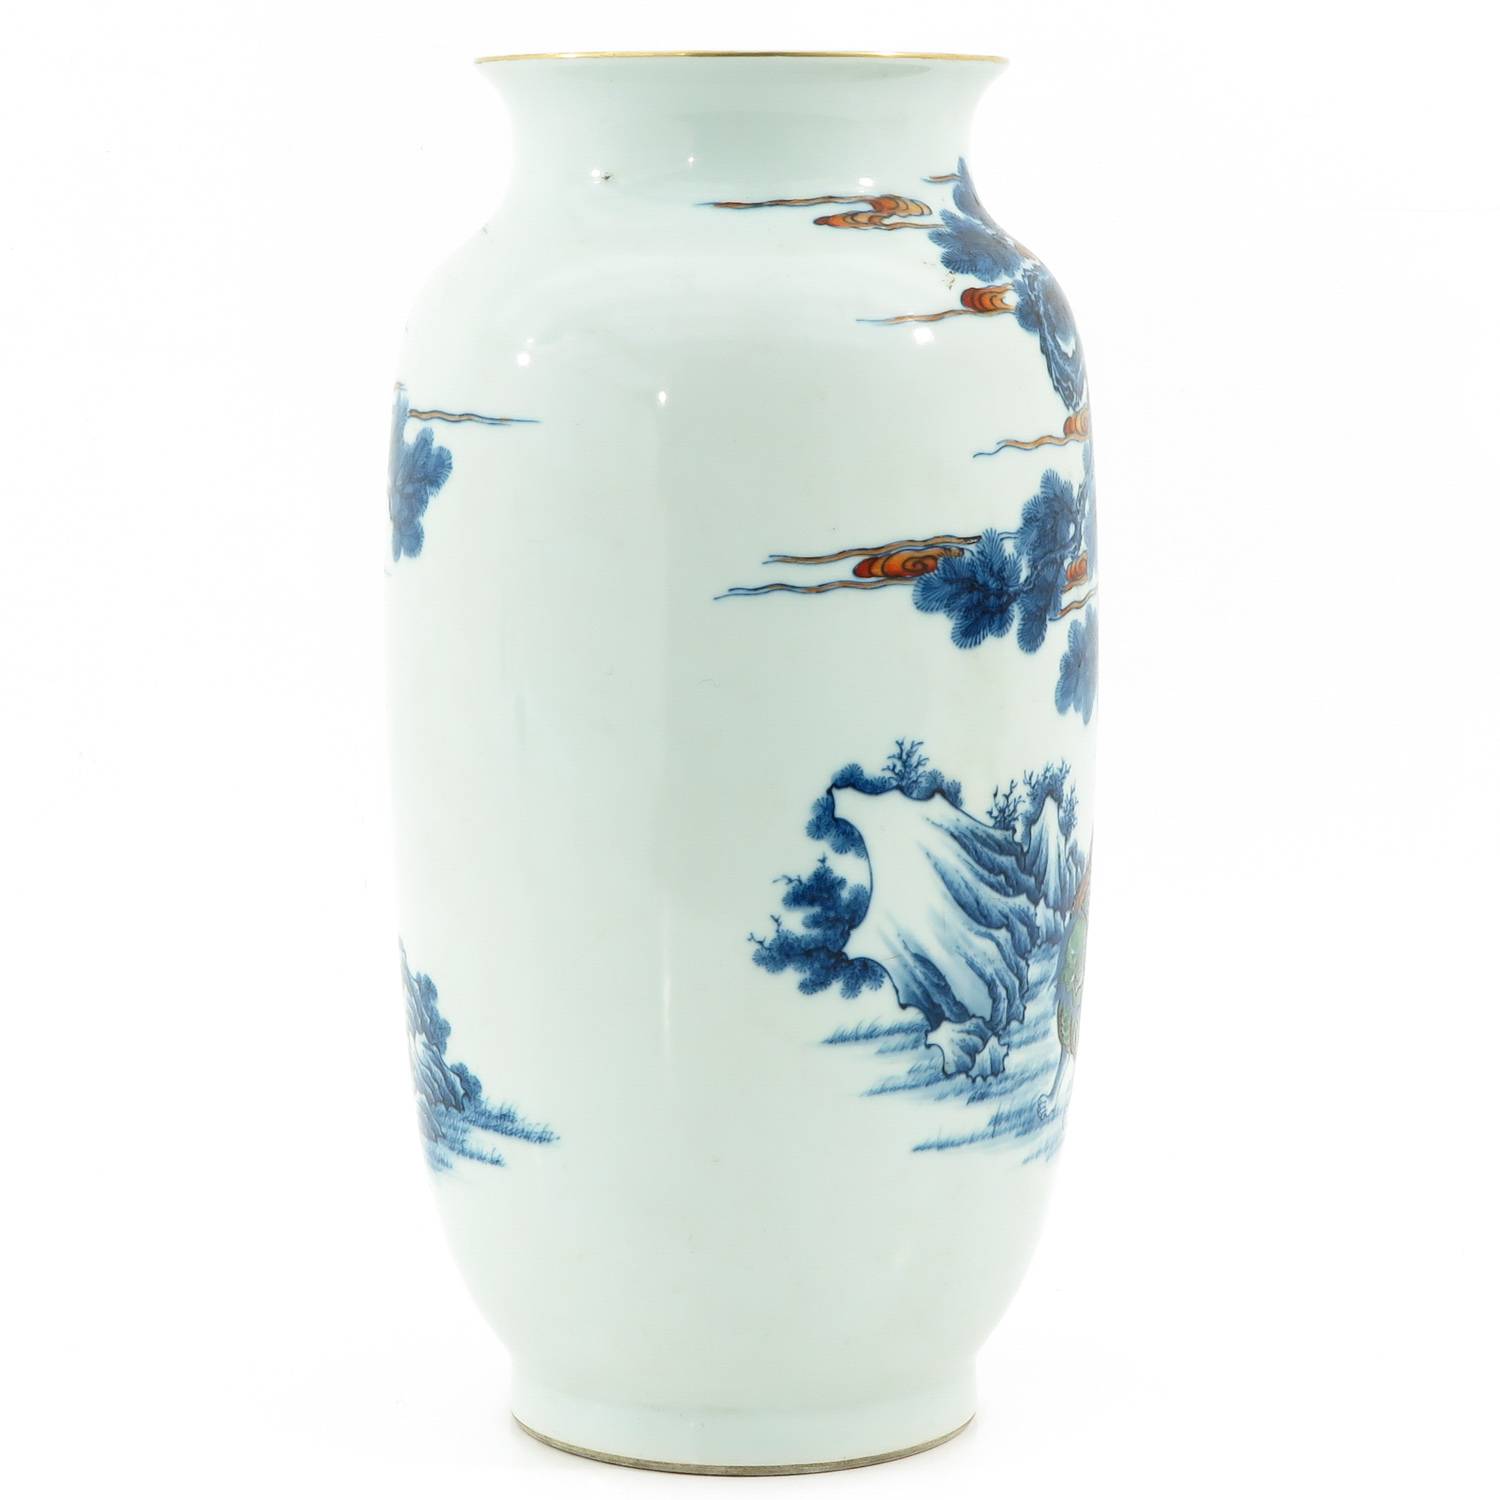 An Iron Red and Blue Decor Vase - Image 4 of 10